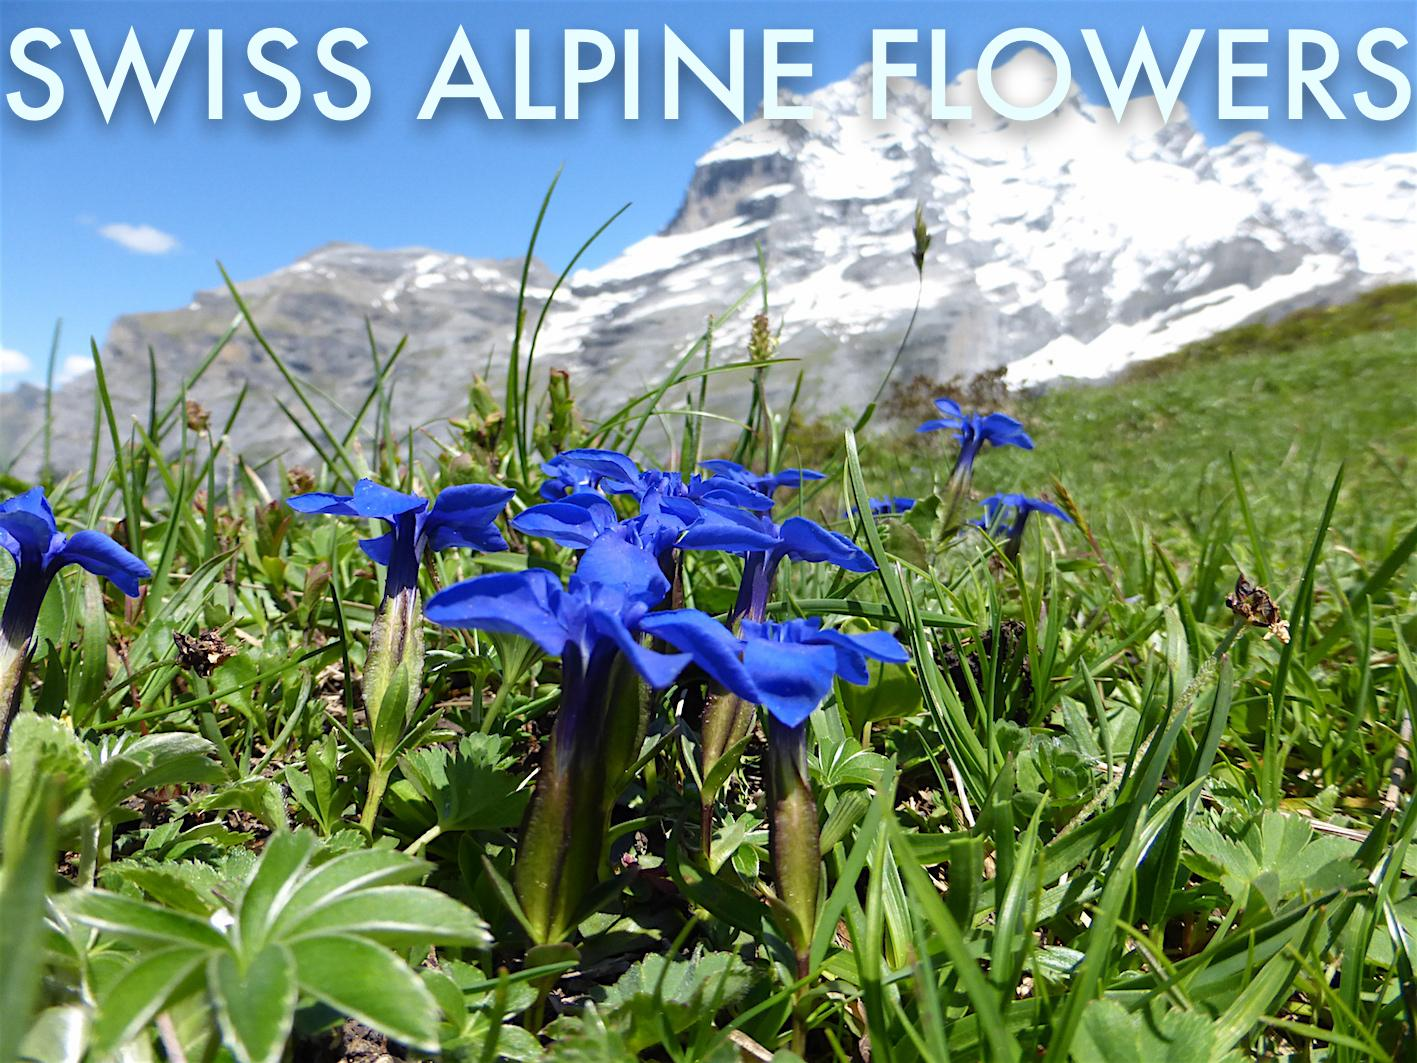 Swiss Alpine Flowers